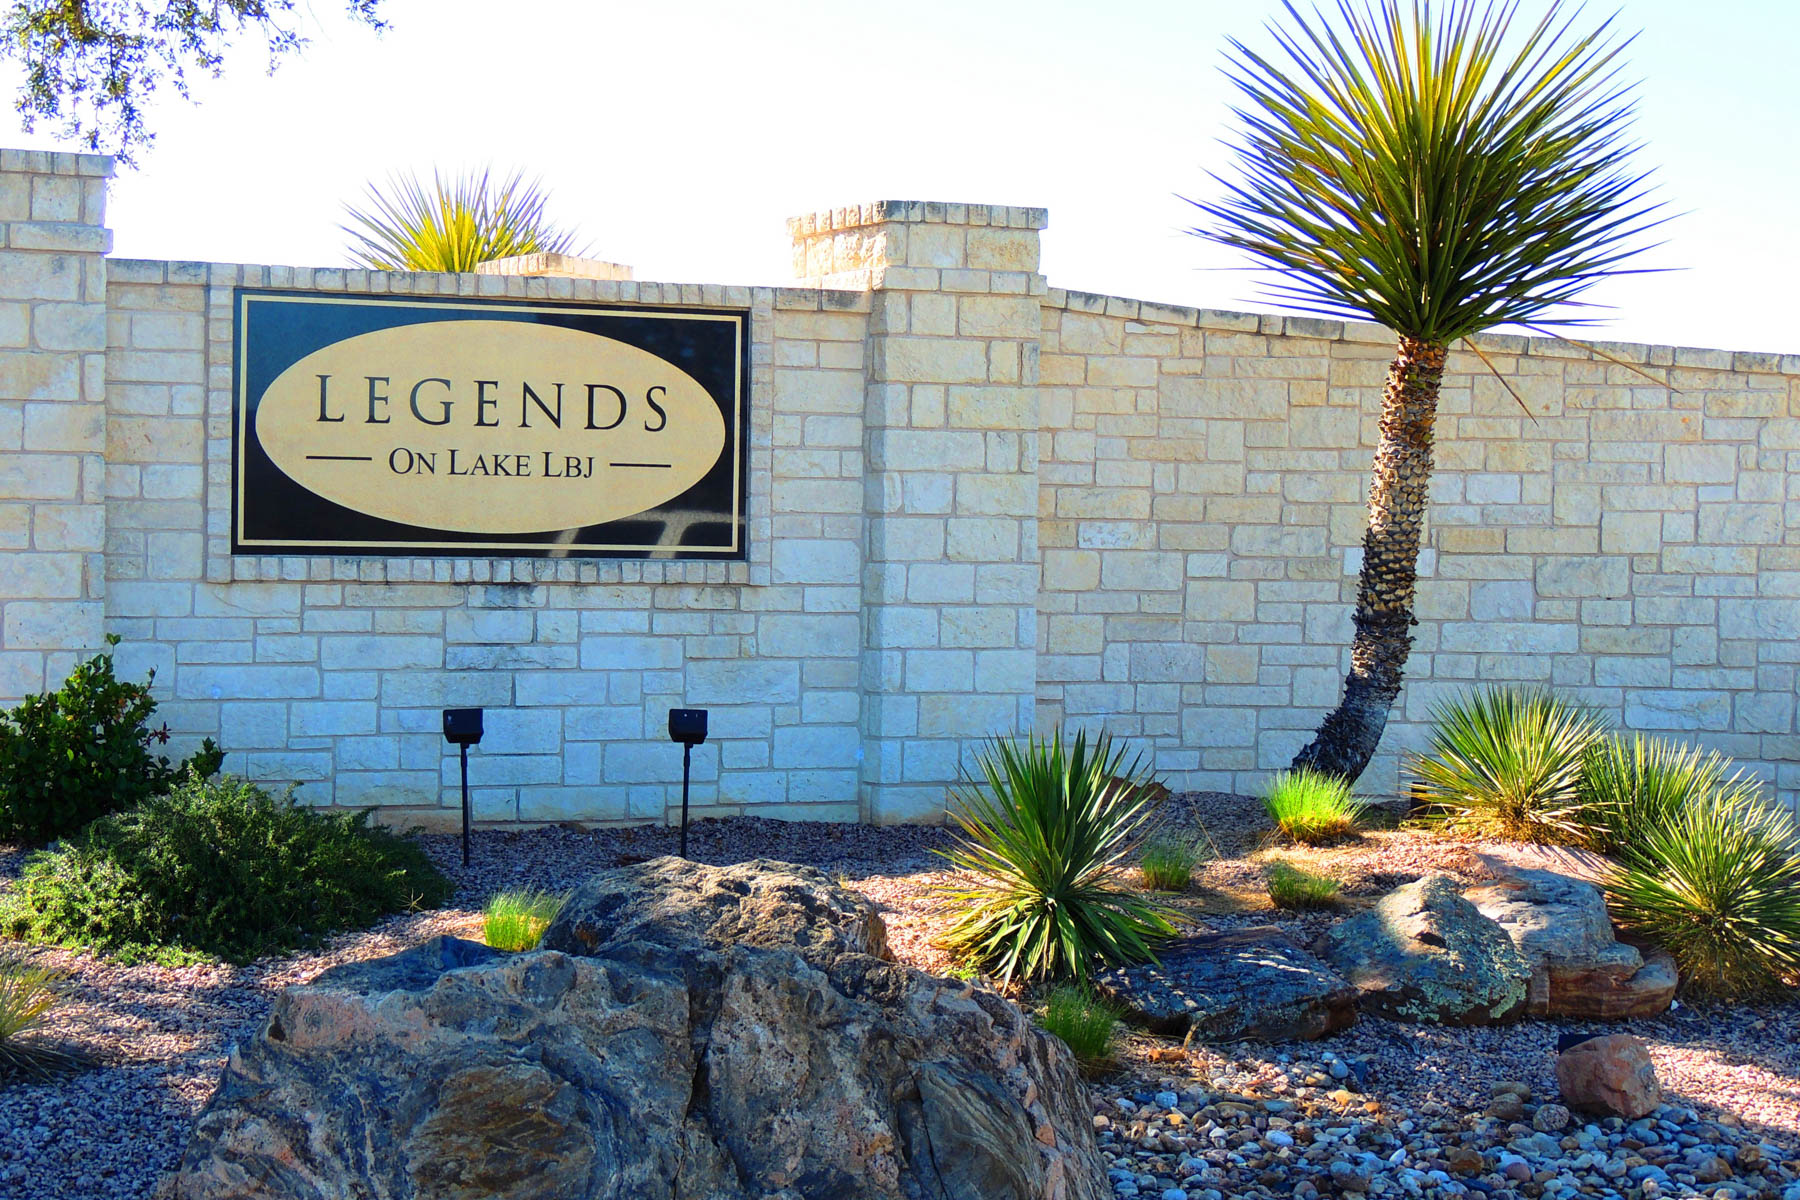 Terreno por un Venta en Excellent Building Site in The Legends Lot 6006 Wildflower Kingsland, Texas 78639 Estados Unidos